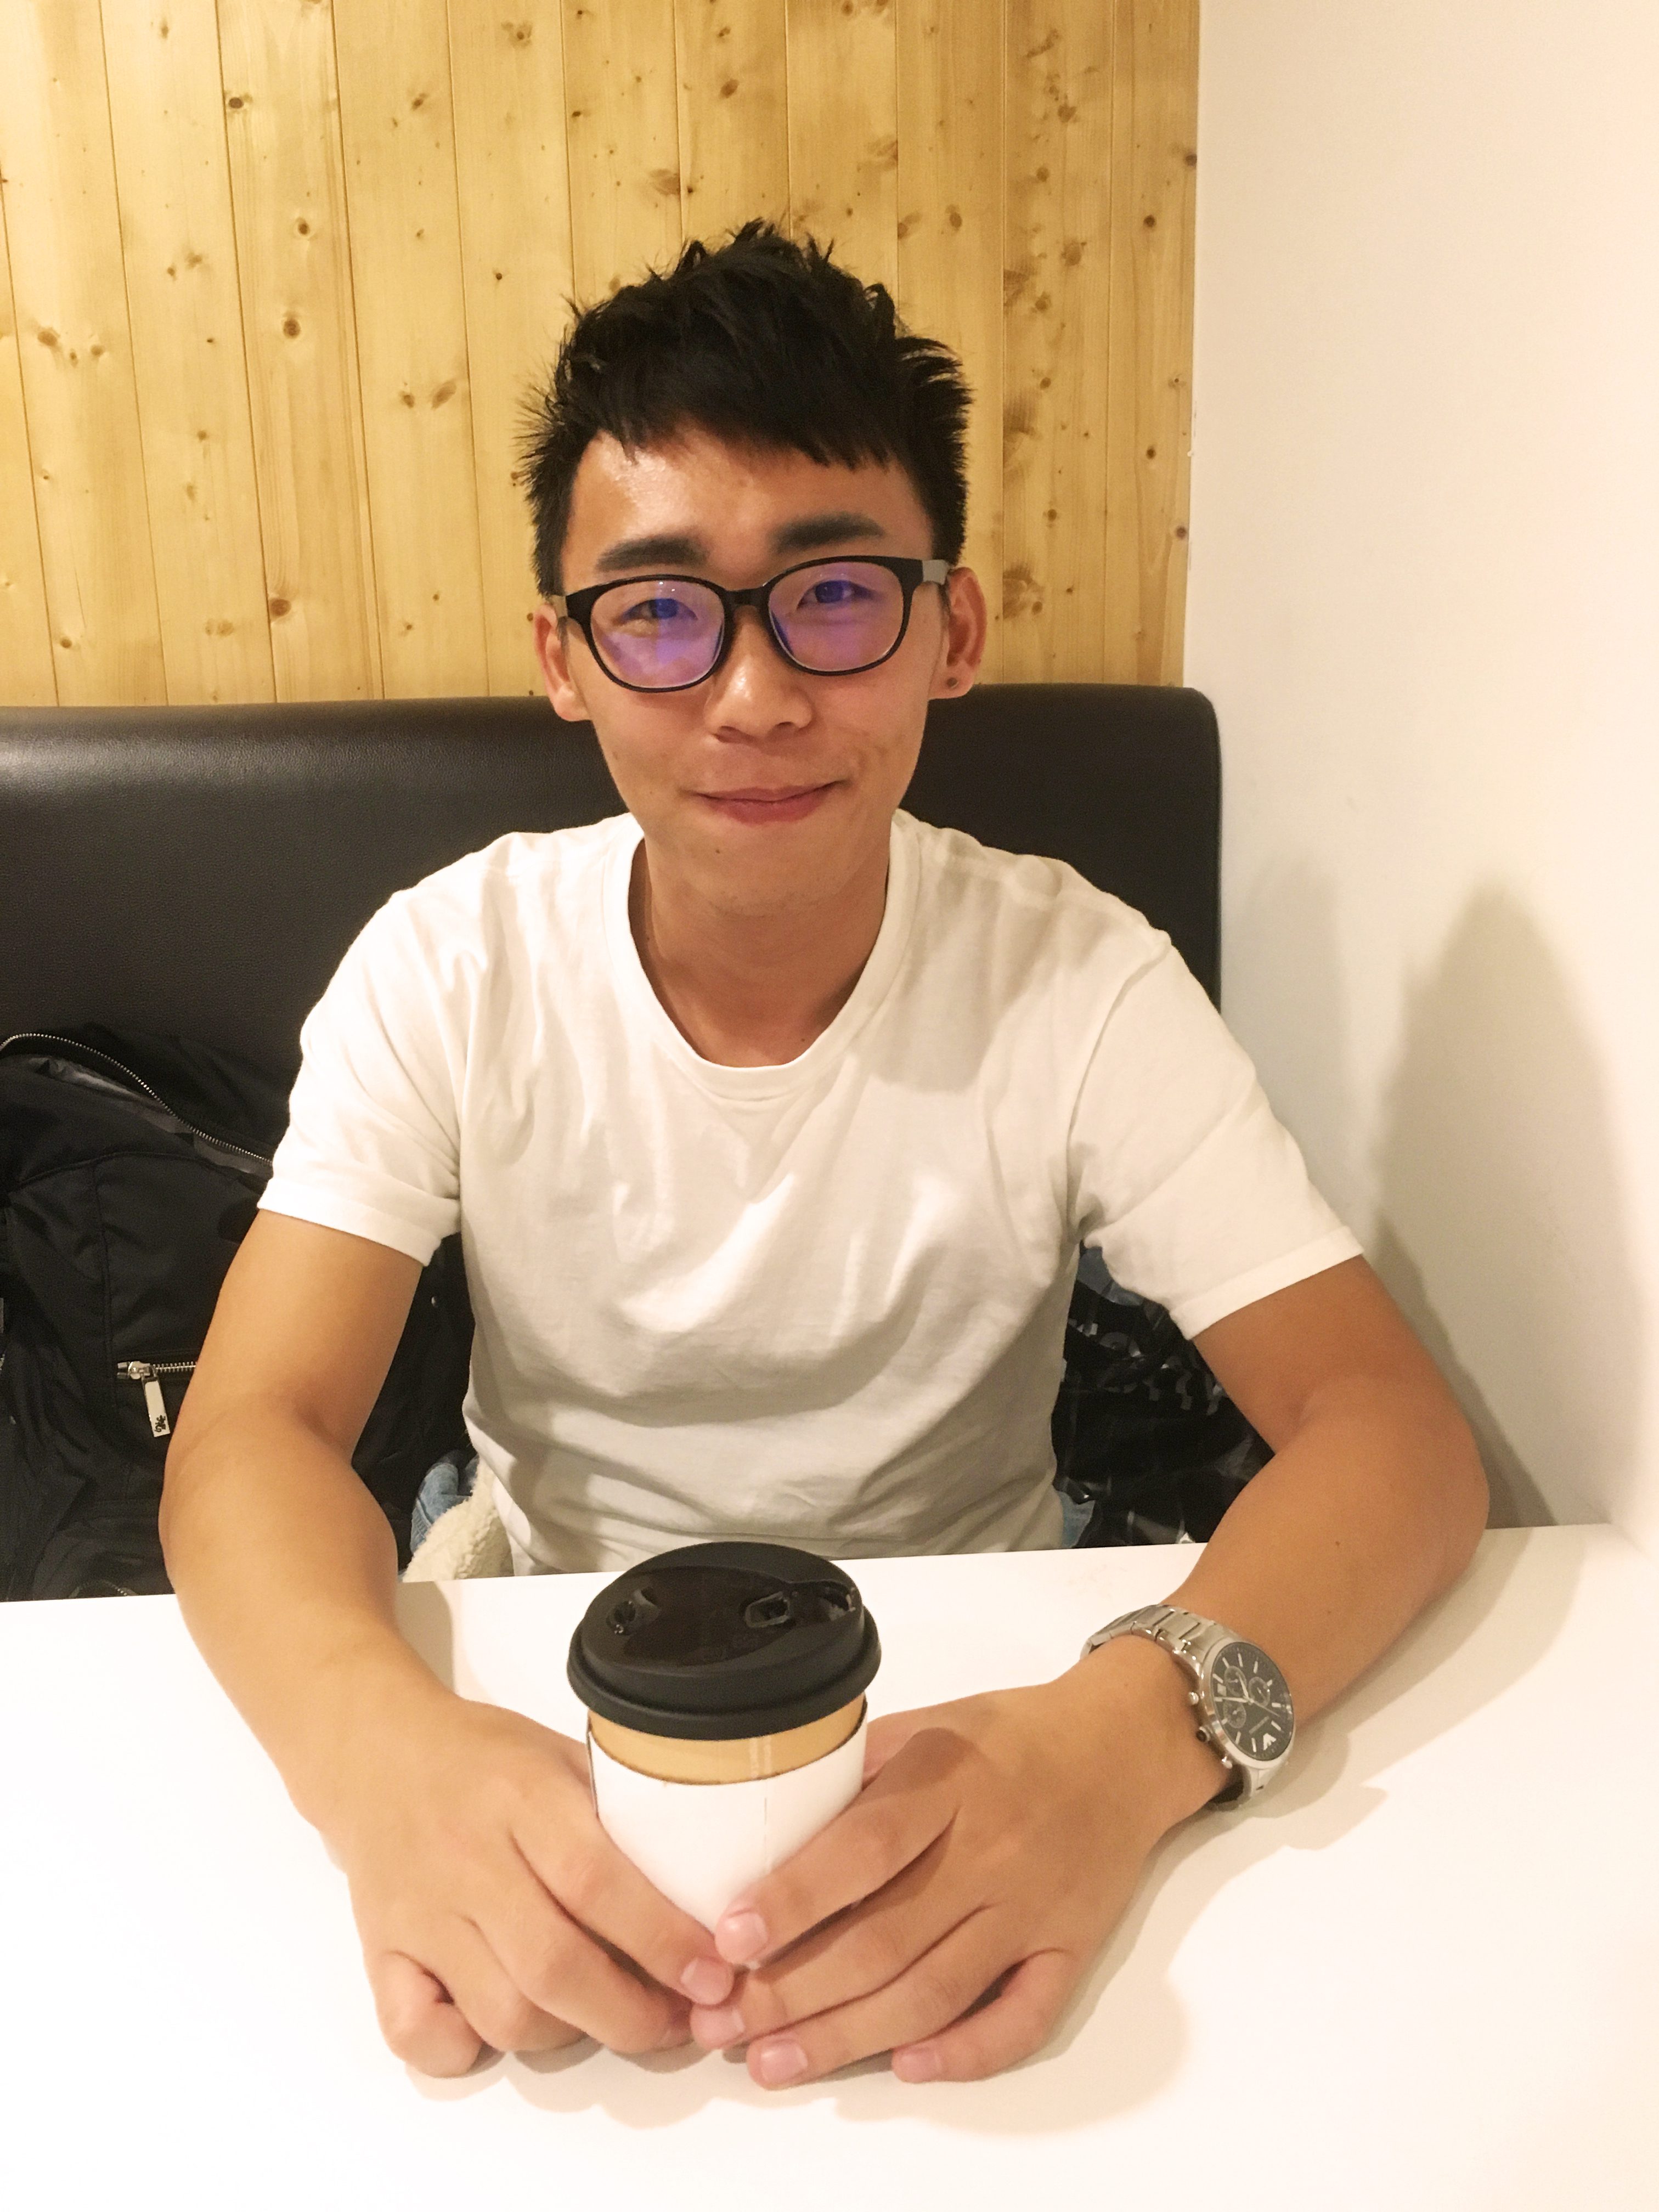 Fang, Kang-hao is interviewed by us in cafe. Photo / Chang, Chih-yu(張芷瑜)